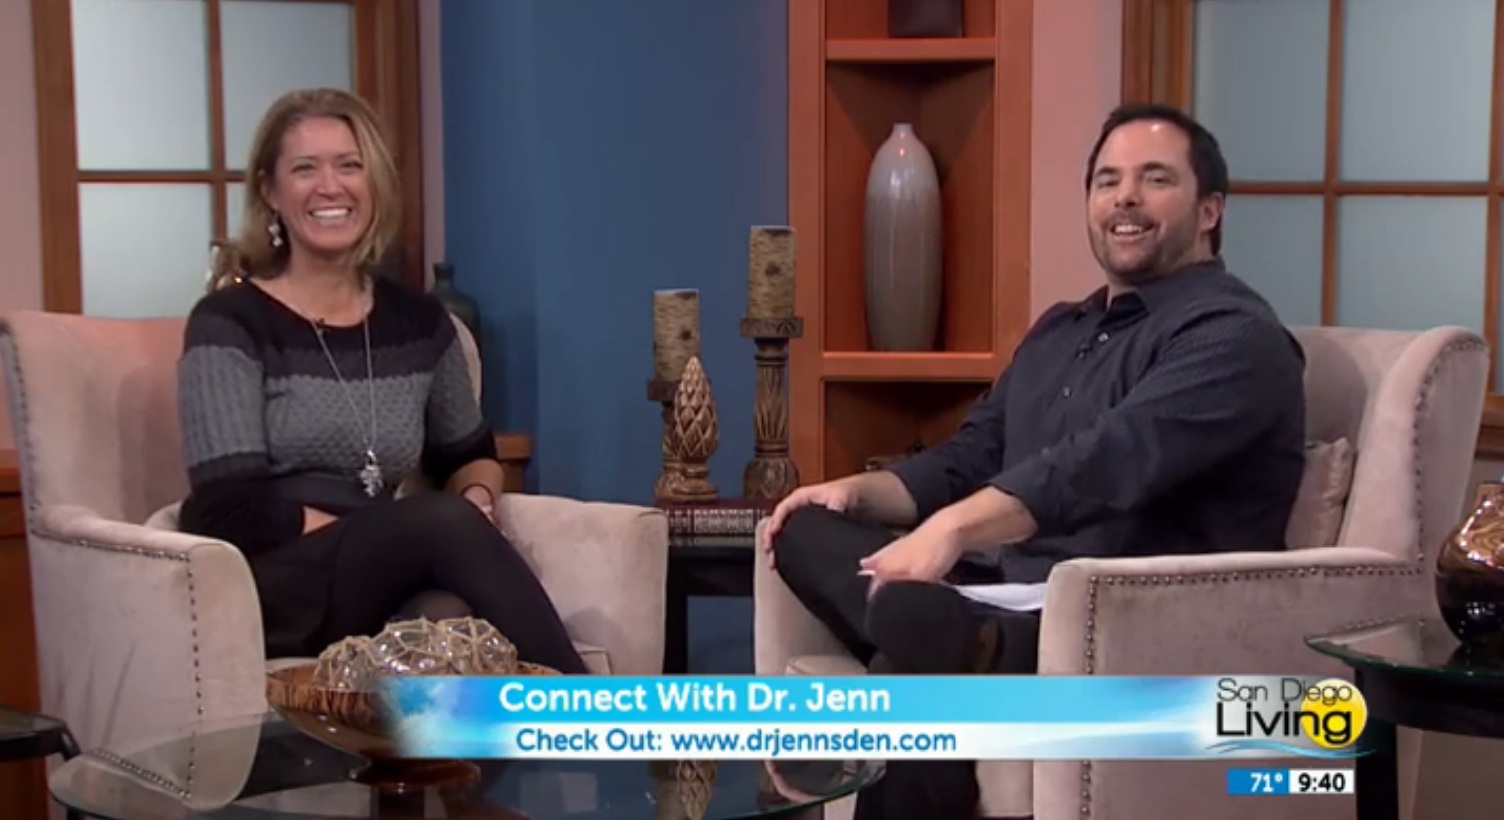 Watch Dr. Jenn Gunsaullus, San Diego Sexologist and Love Doctor, on San Diego Living.